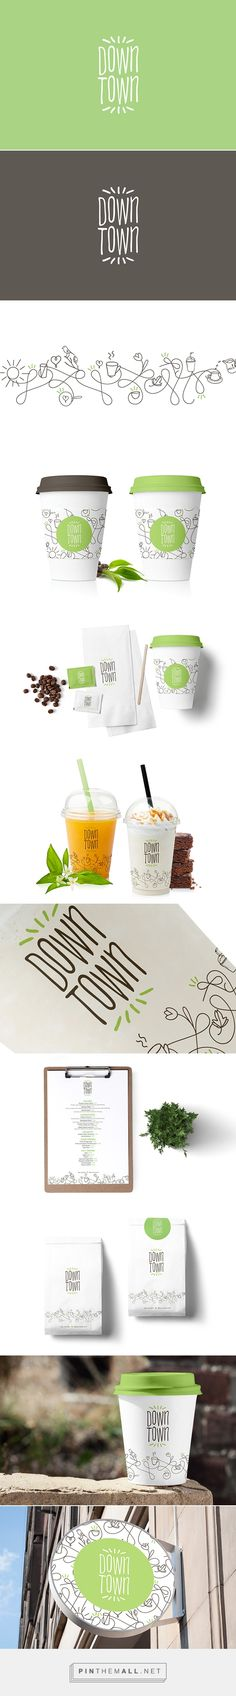 DownTown Deli & Cafe designed by Mohd Almousa